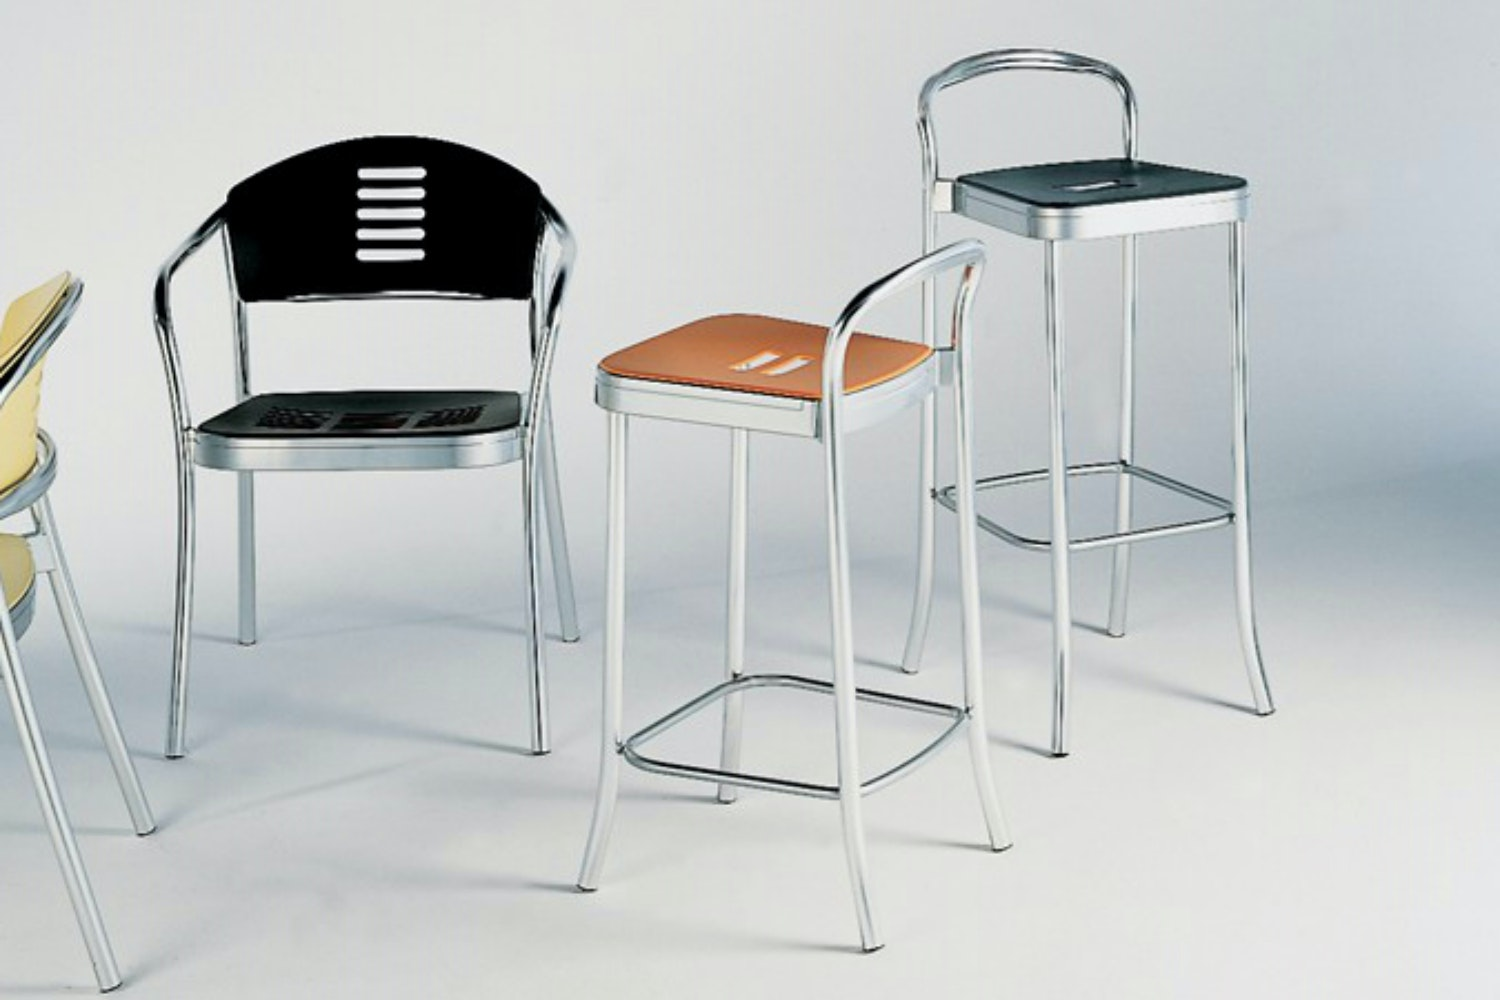 Mauna-Kea Low Stool by Vico Magistretti for Kartell